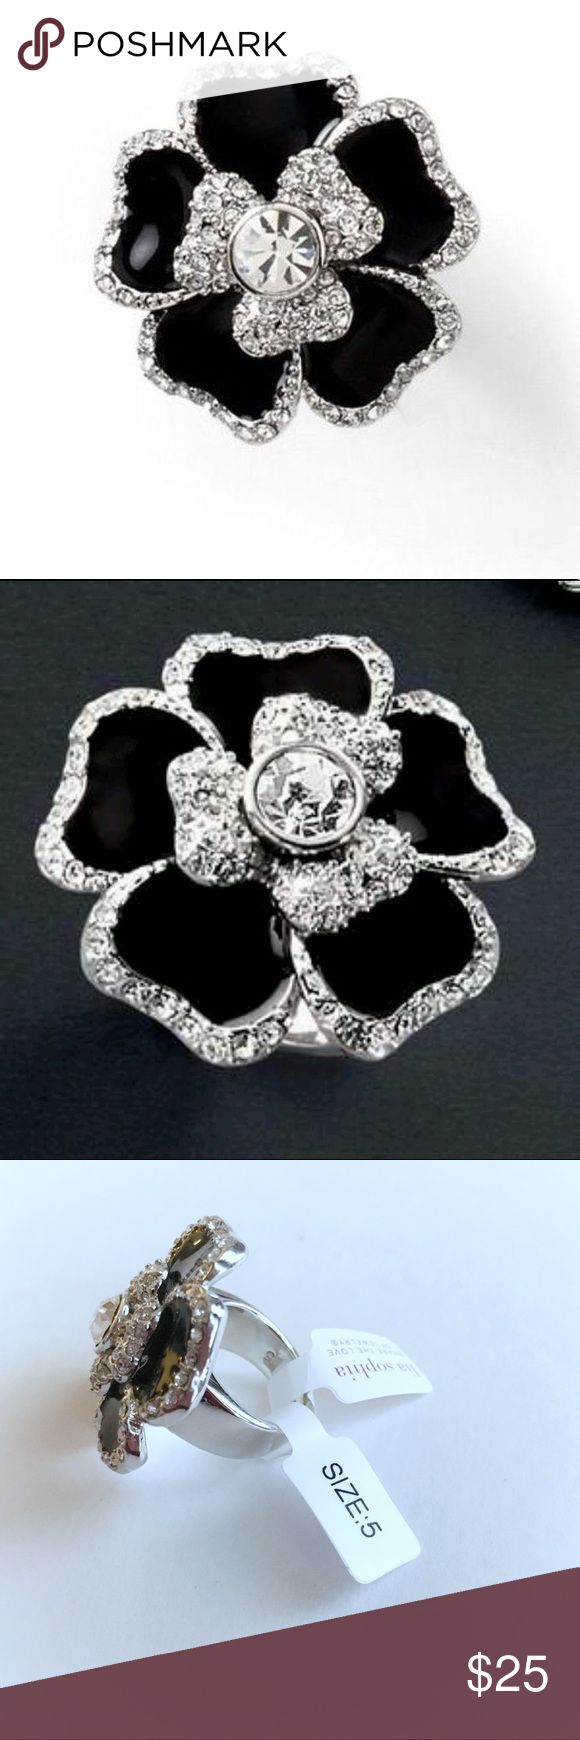 NEW Lia Sophia Black Dahlia Blooming Ring, Size 5 Brand new with tags. Size 5.  This blooming flower of a ring is simply exquisite with it's shiny, onyx black enamel petals - each one trimmed with tiny, sparkly crystals. The center stone is beautifully cut and faceted for serious brilliance. Shiny silver-tone band. Lia Sophia Jewelry Rings